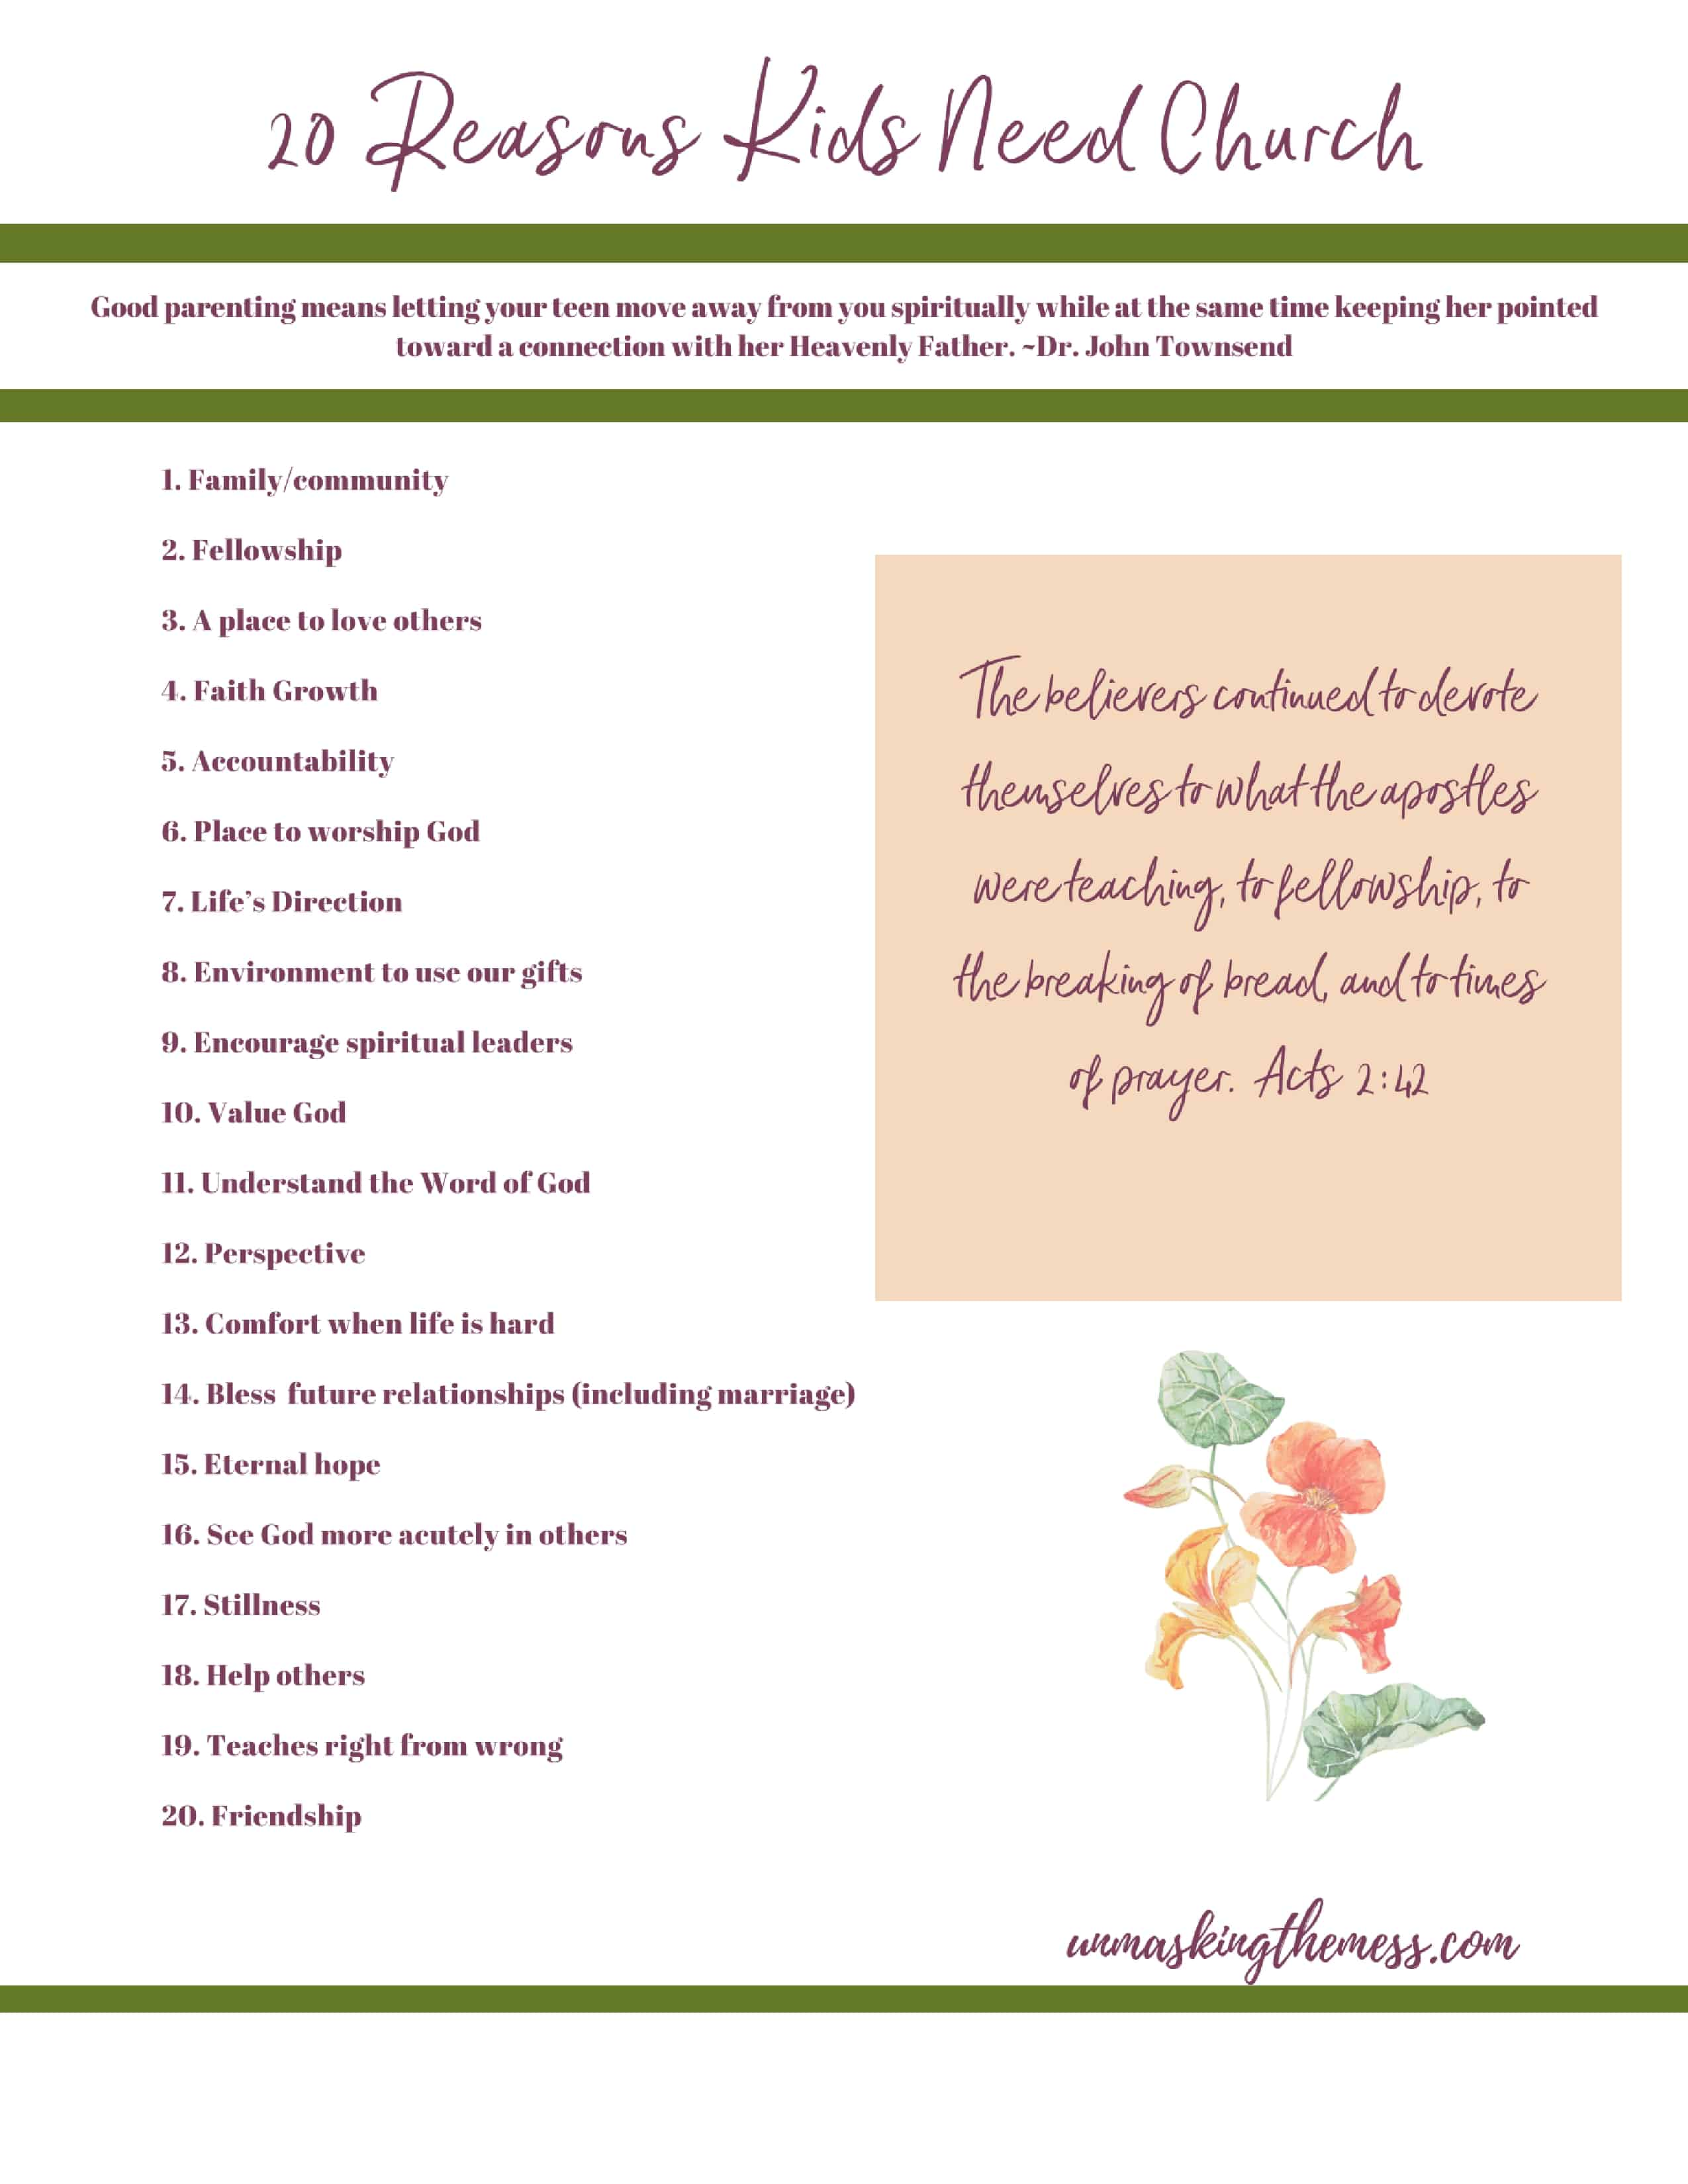 Printable-20 Reasons Church is the Best Environment for Kids. Teaching our kids why they need church. What can they learn there? How does church help in life? Ideas, quotes and tips on church for kids.